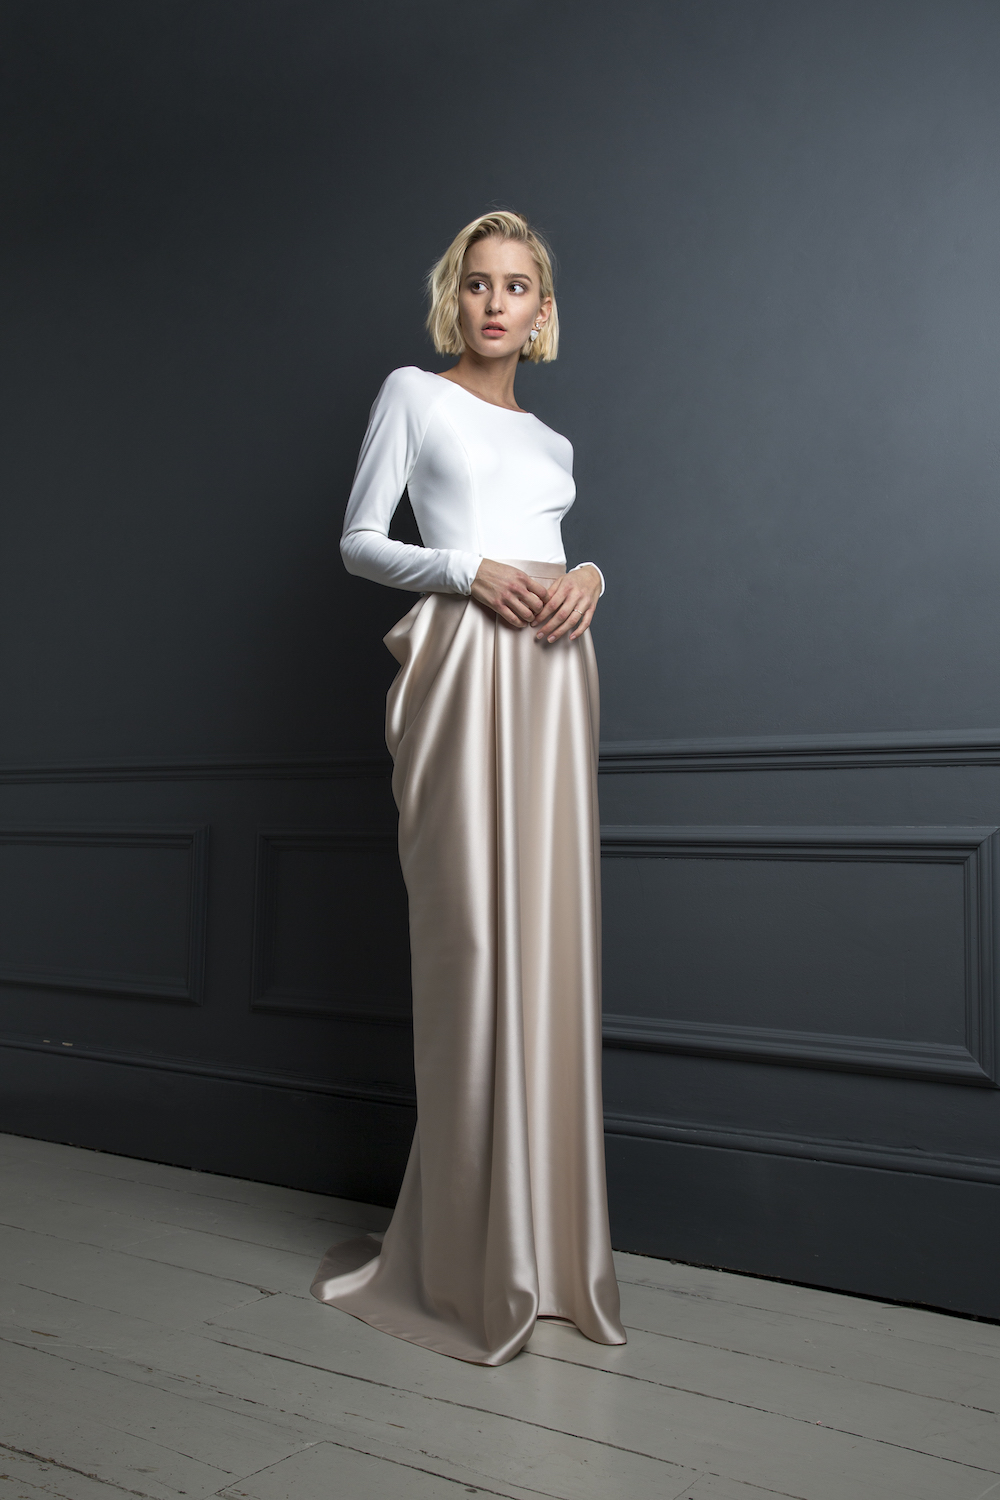 GORDON TOP & JAMES SKIRT | WEDDING DRESS BY HALFPENNY LONDON